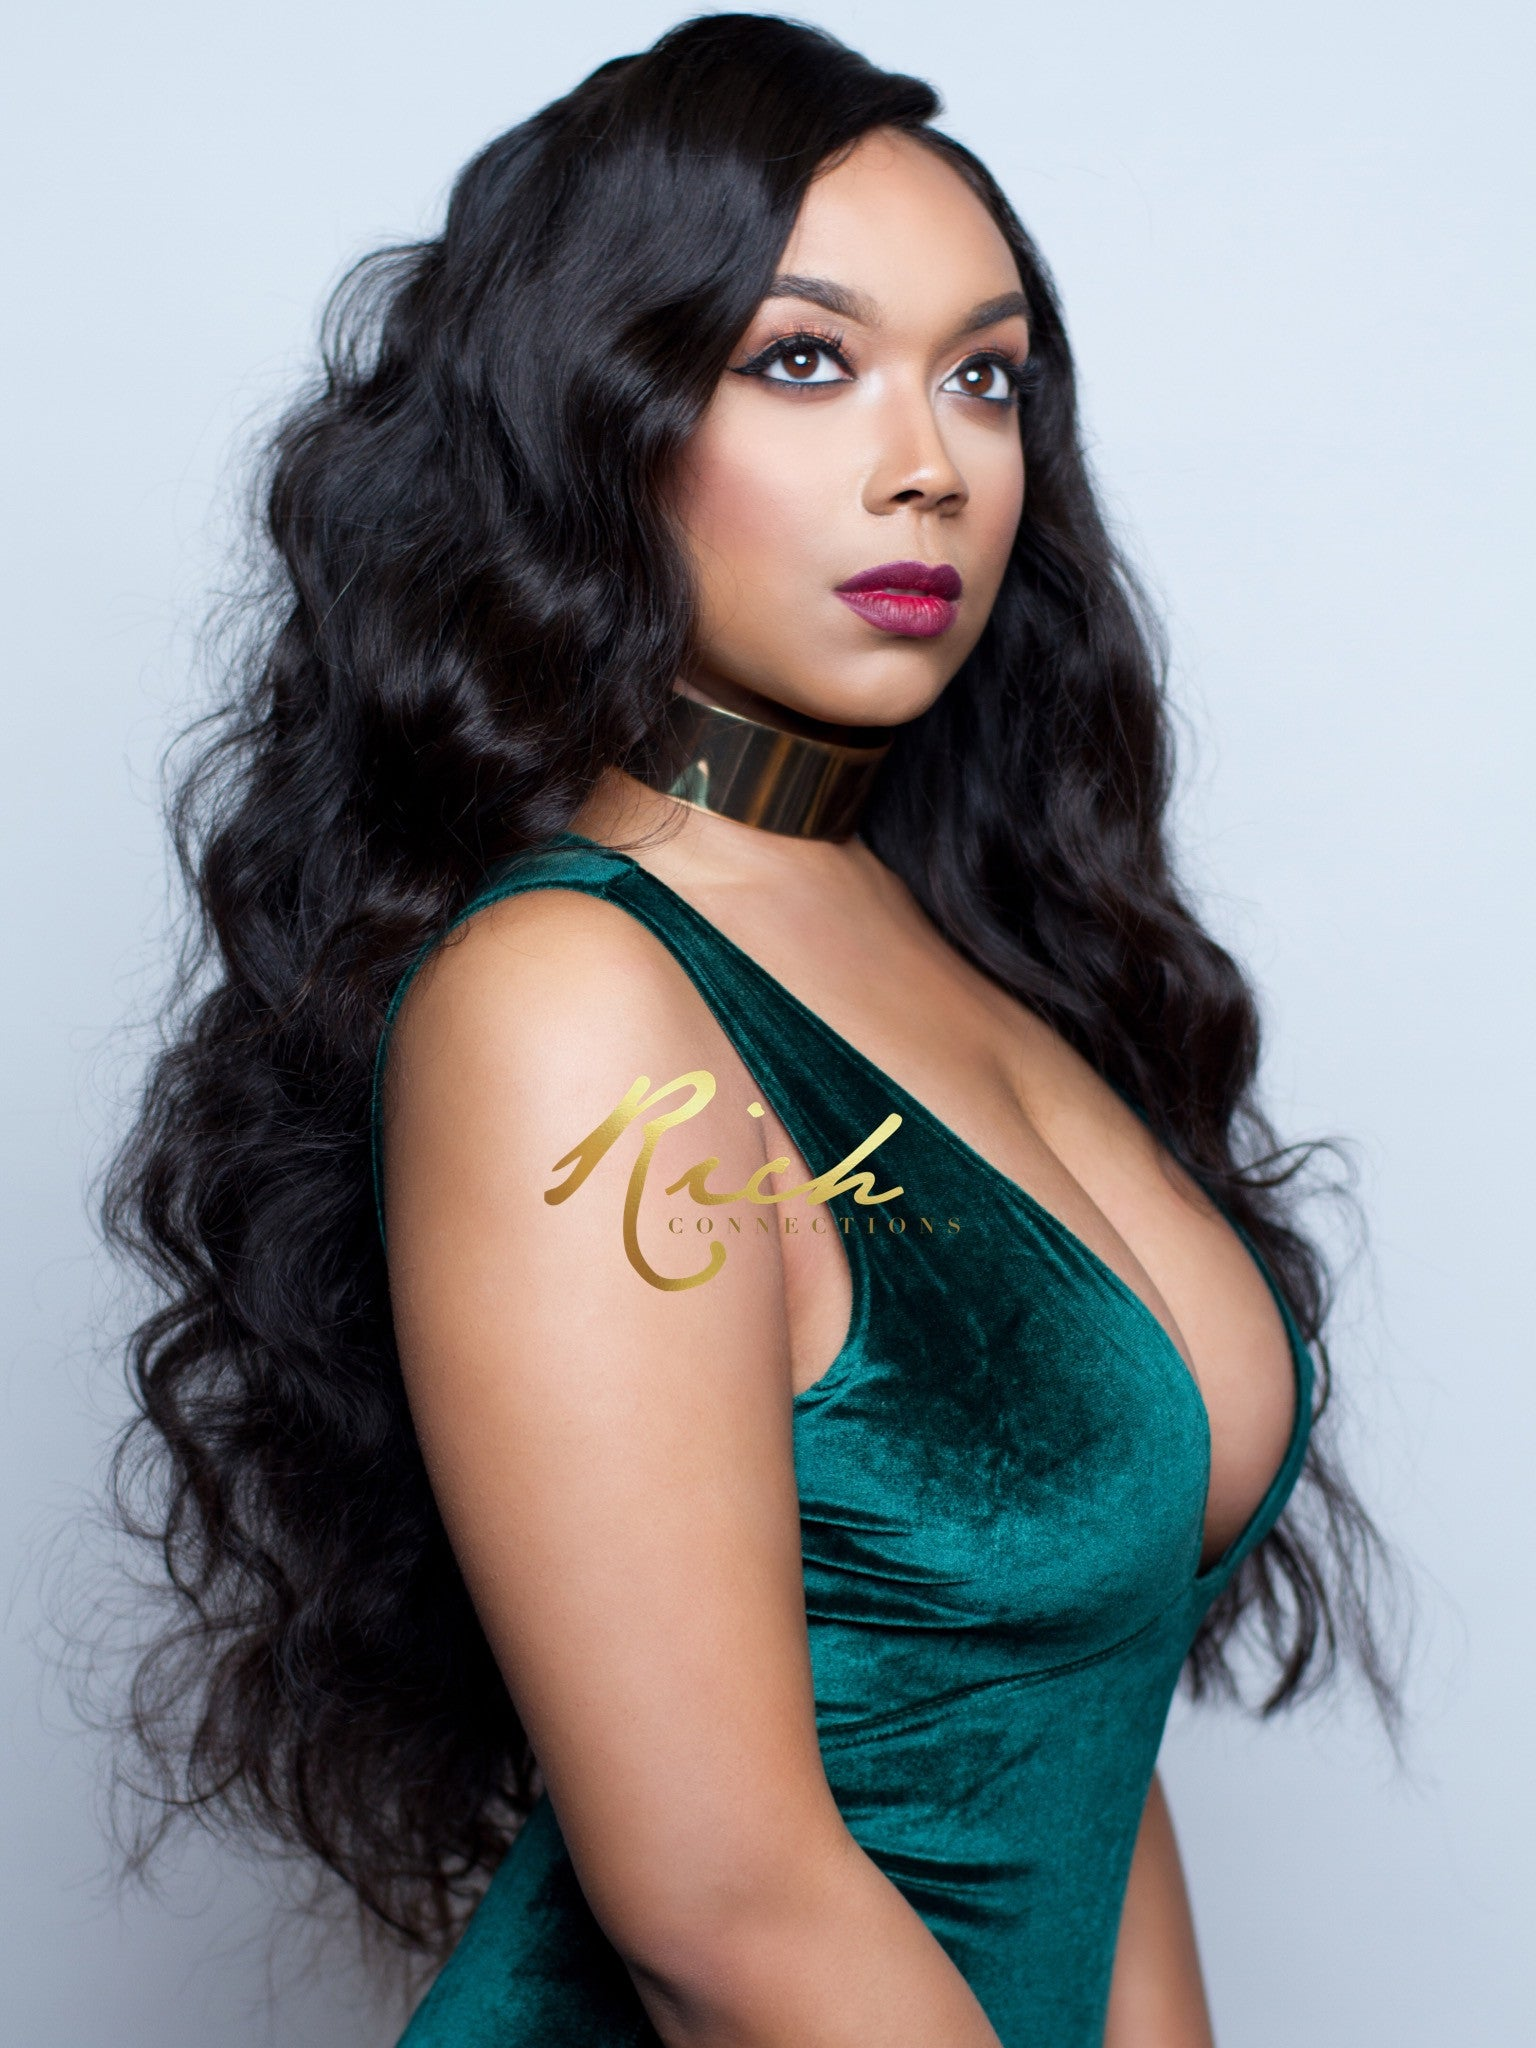 Body Wave - Gold LUXE Virgin Human Hair Collection - Rich Connections, Extensions, Bundles, Frontals, Closures